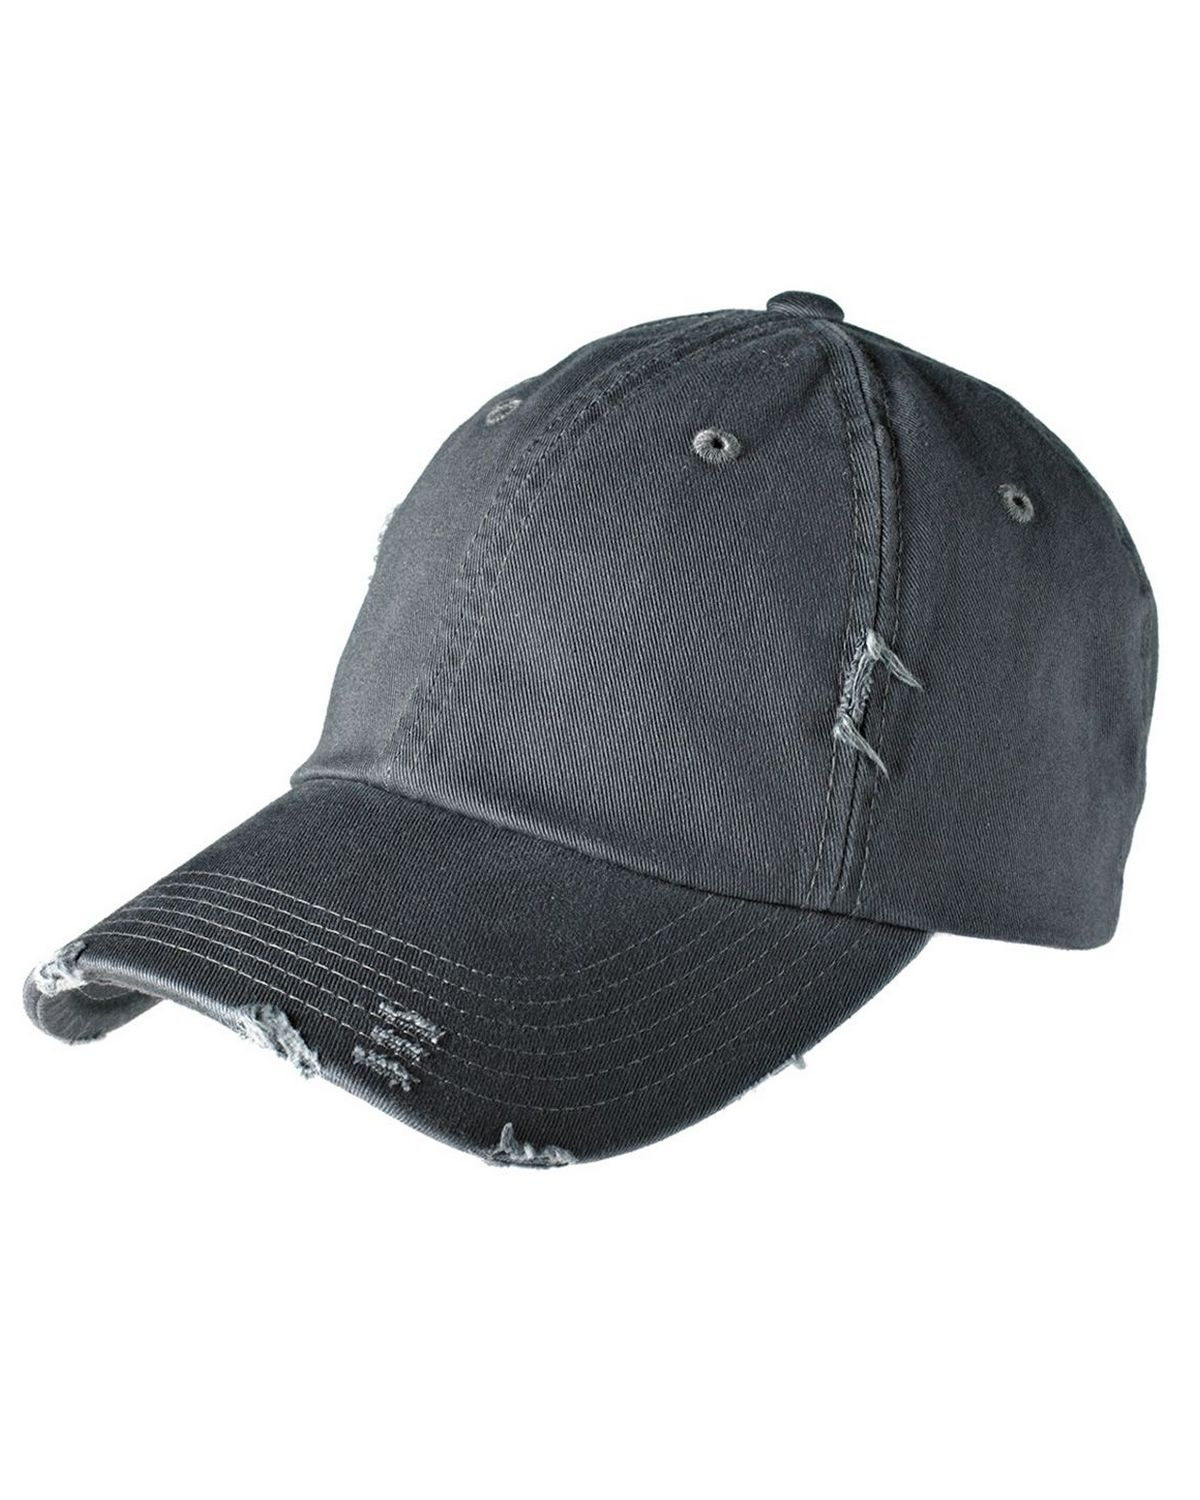 907d85eb6c2 Buy District DT600 Distressed Cap